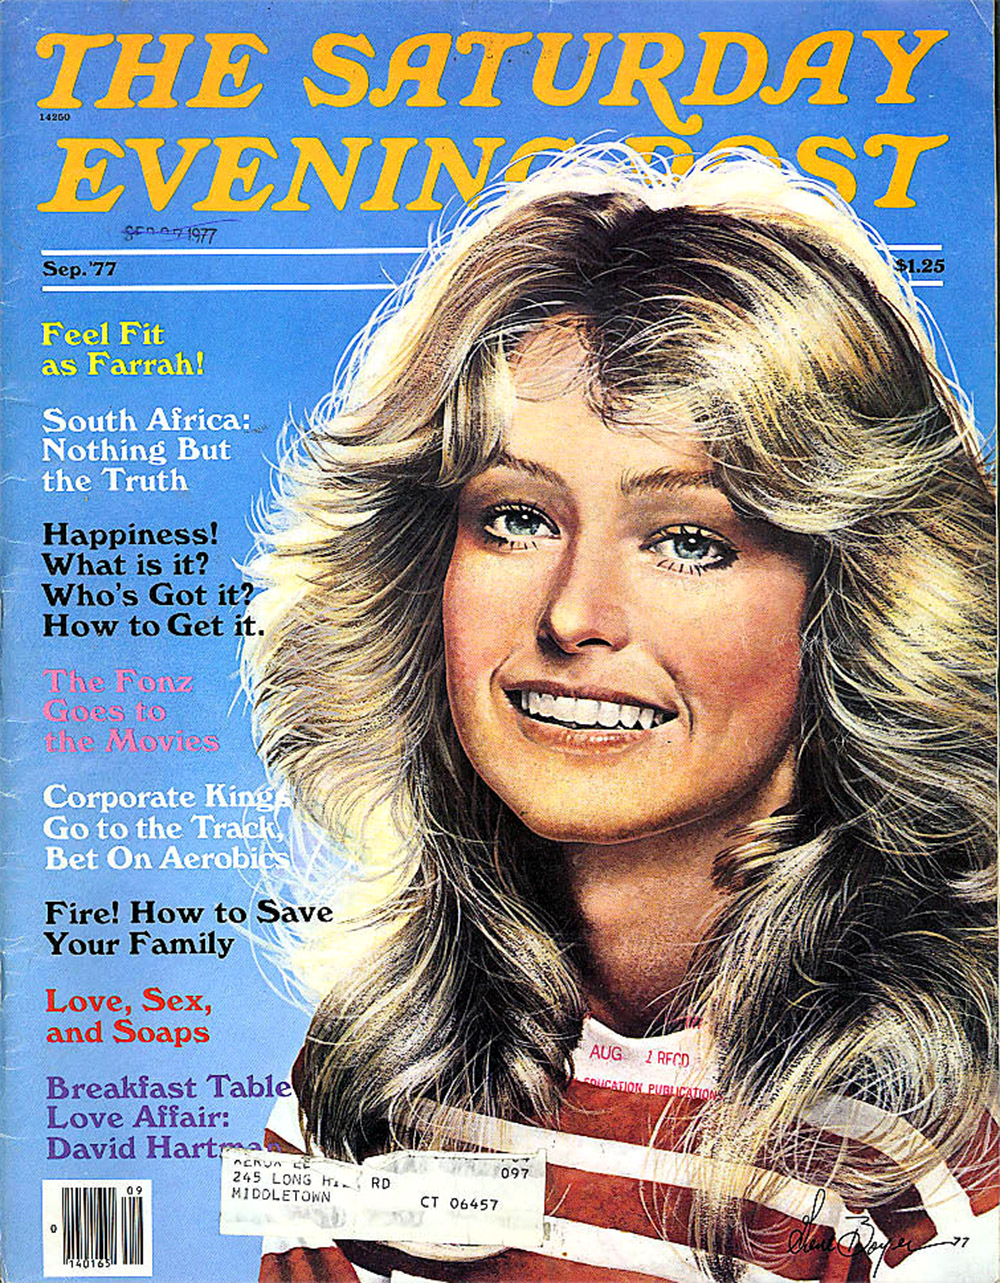 saturday evening post Farrah Fawcett 1977